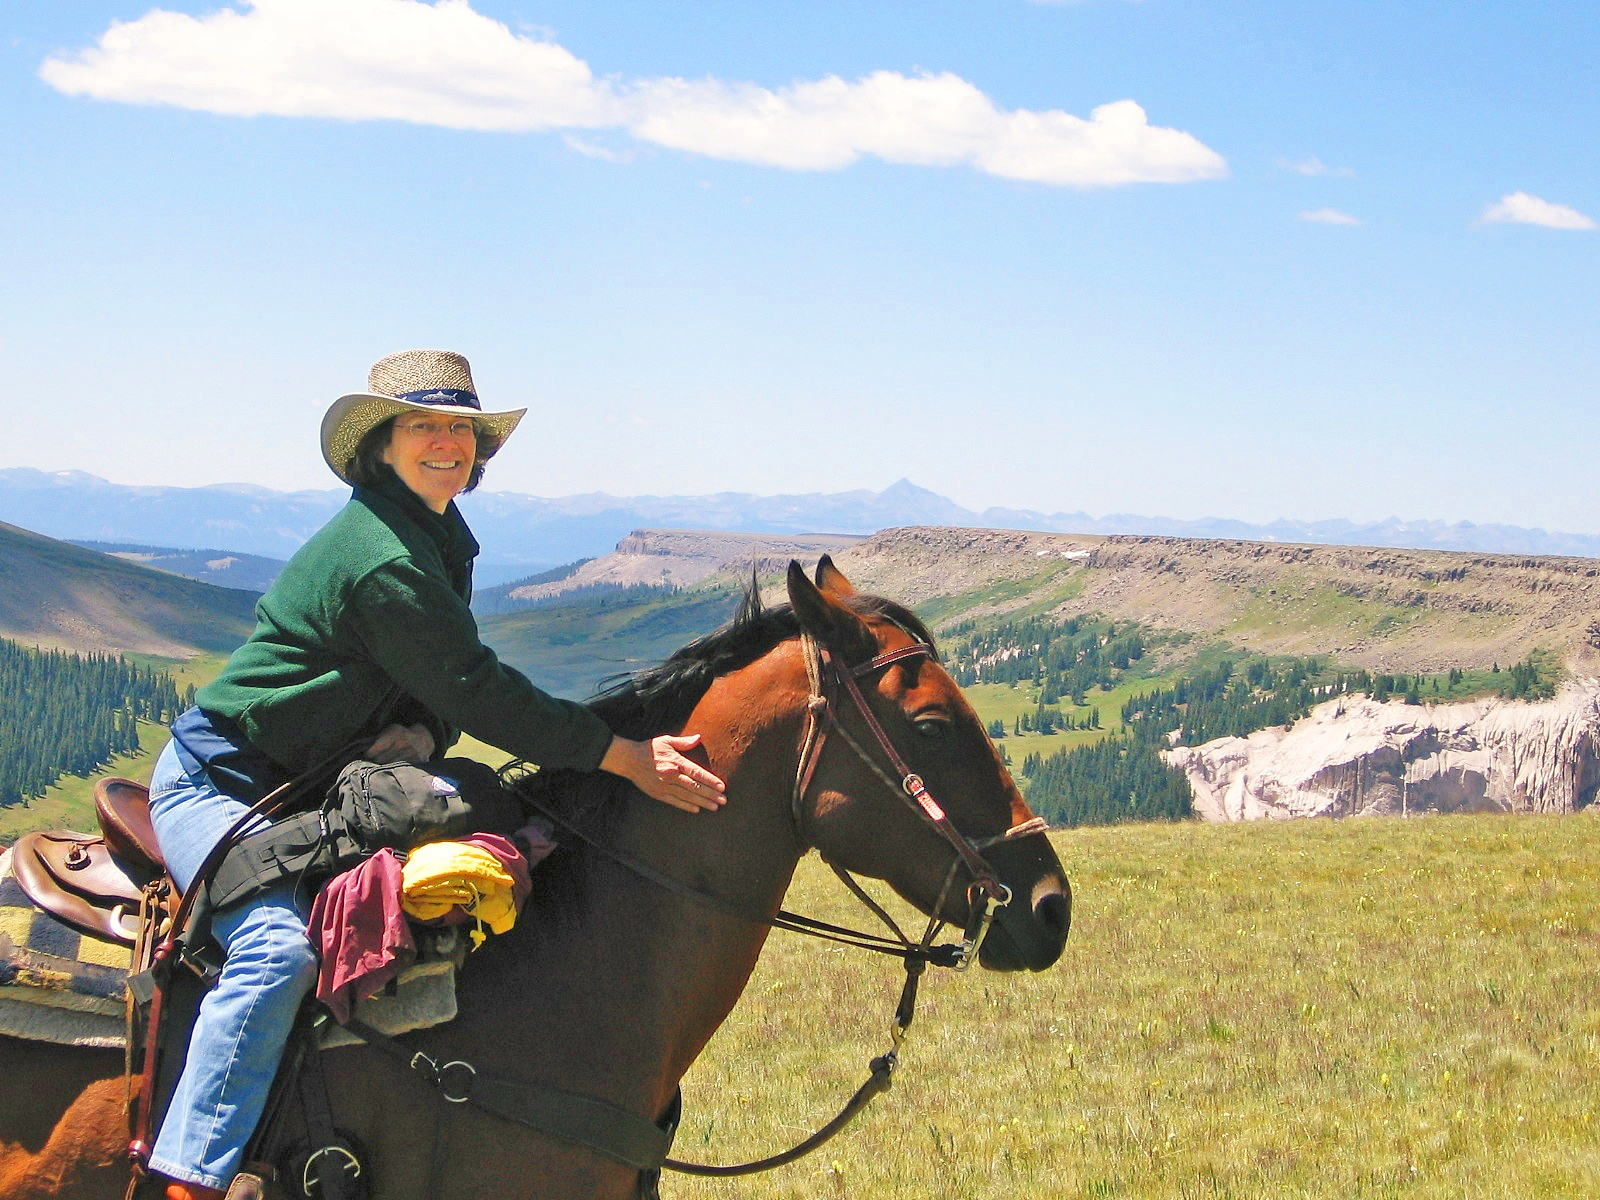 A woman poses on a chestnut-colored horse high in Rocky Mountains.